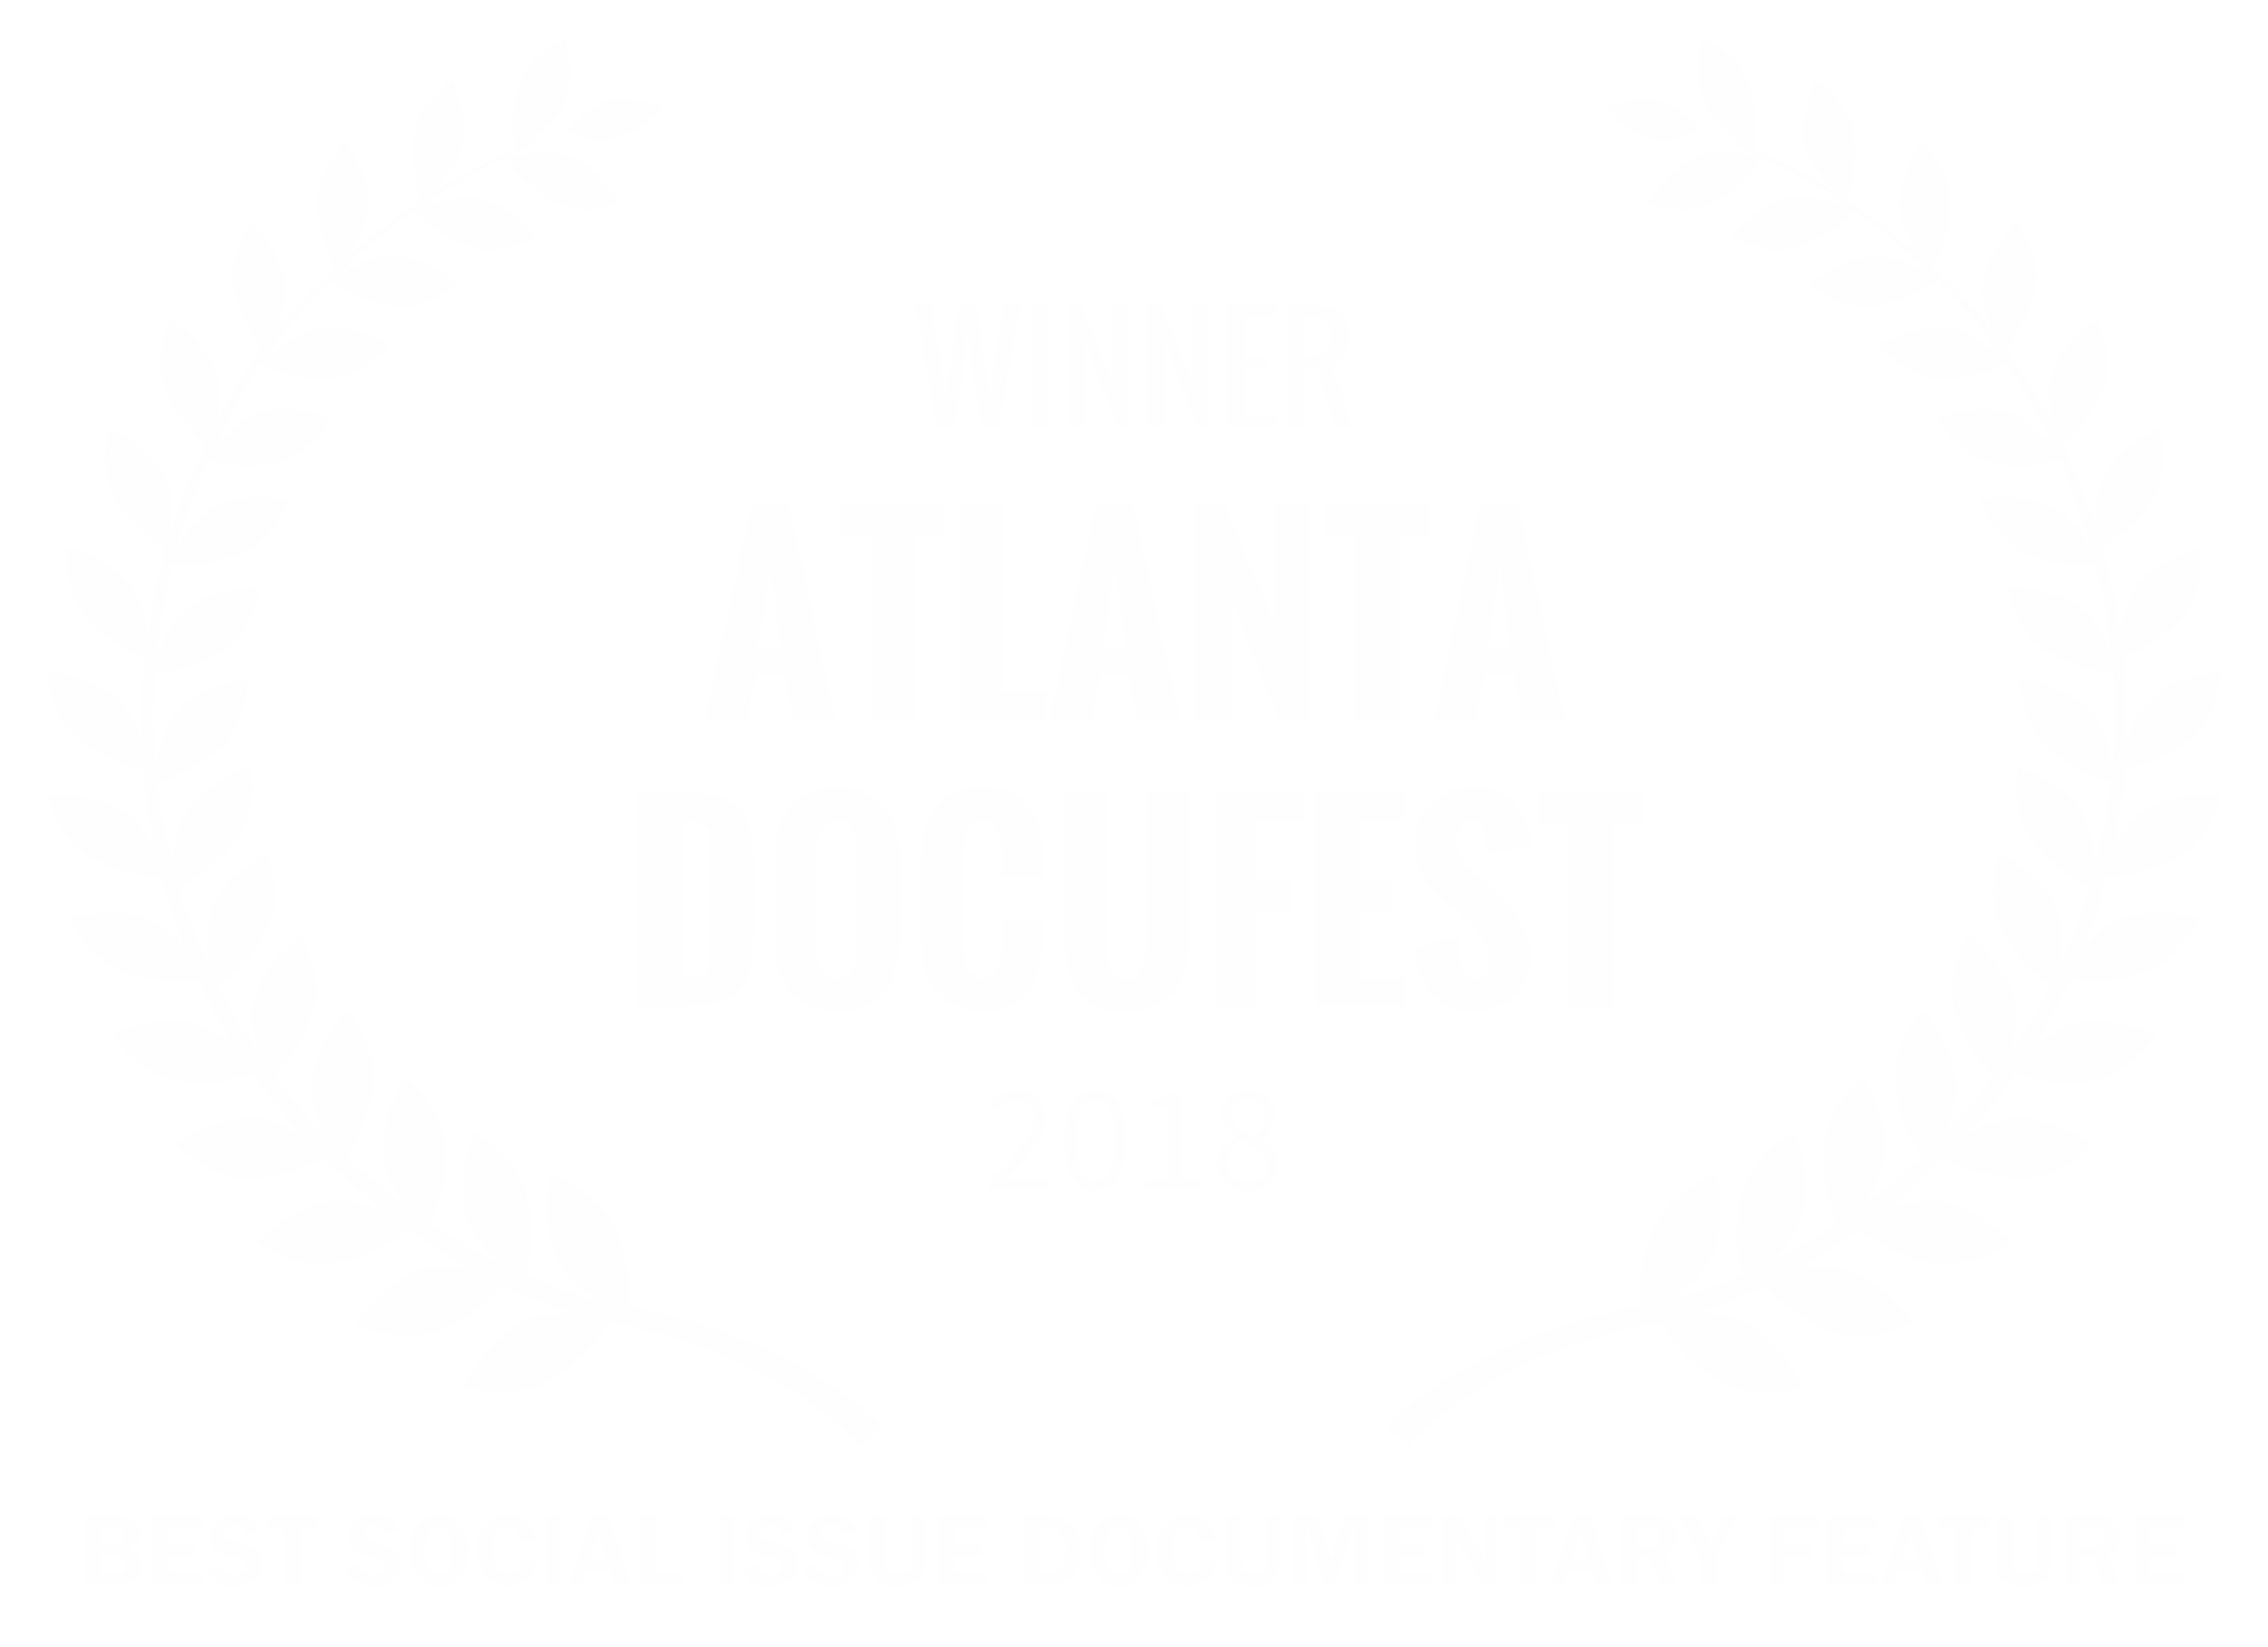 WINNER-ATLANTADOCUFEST-2018-White.WinnerLarge.png